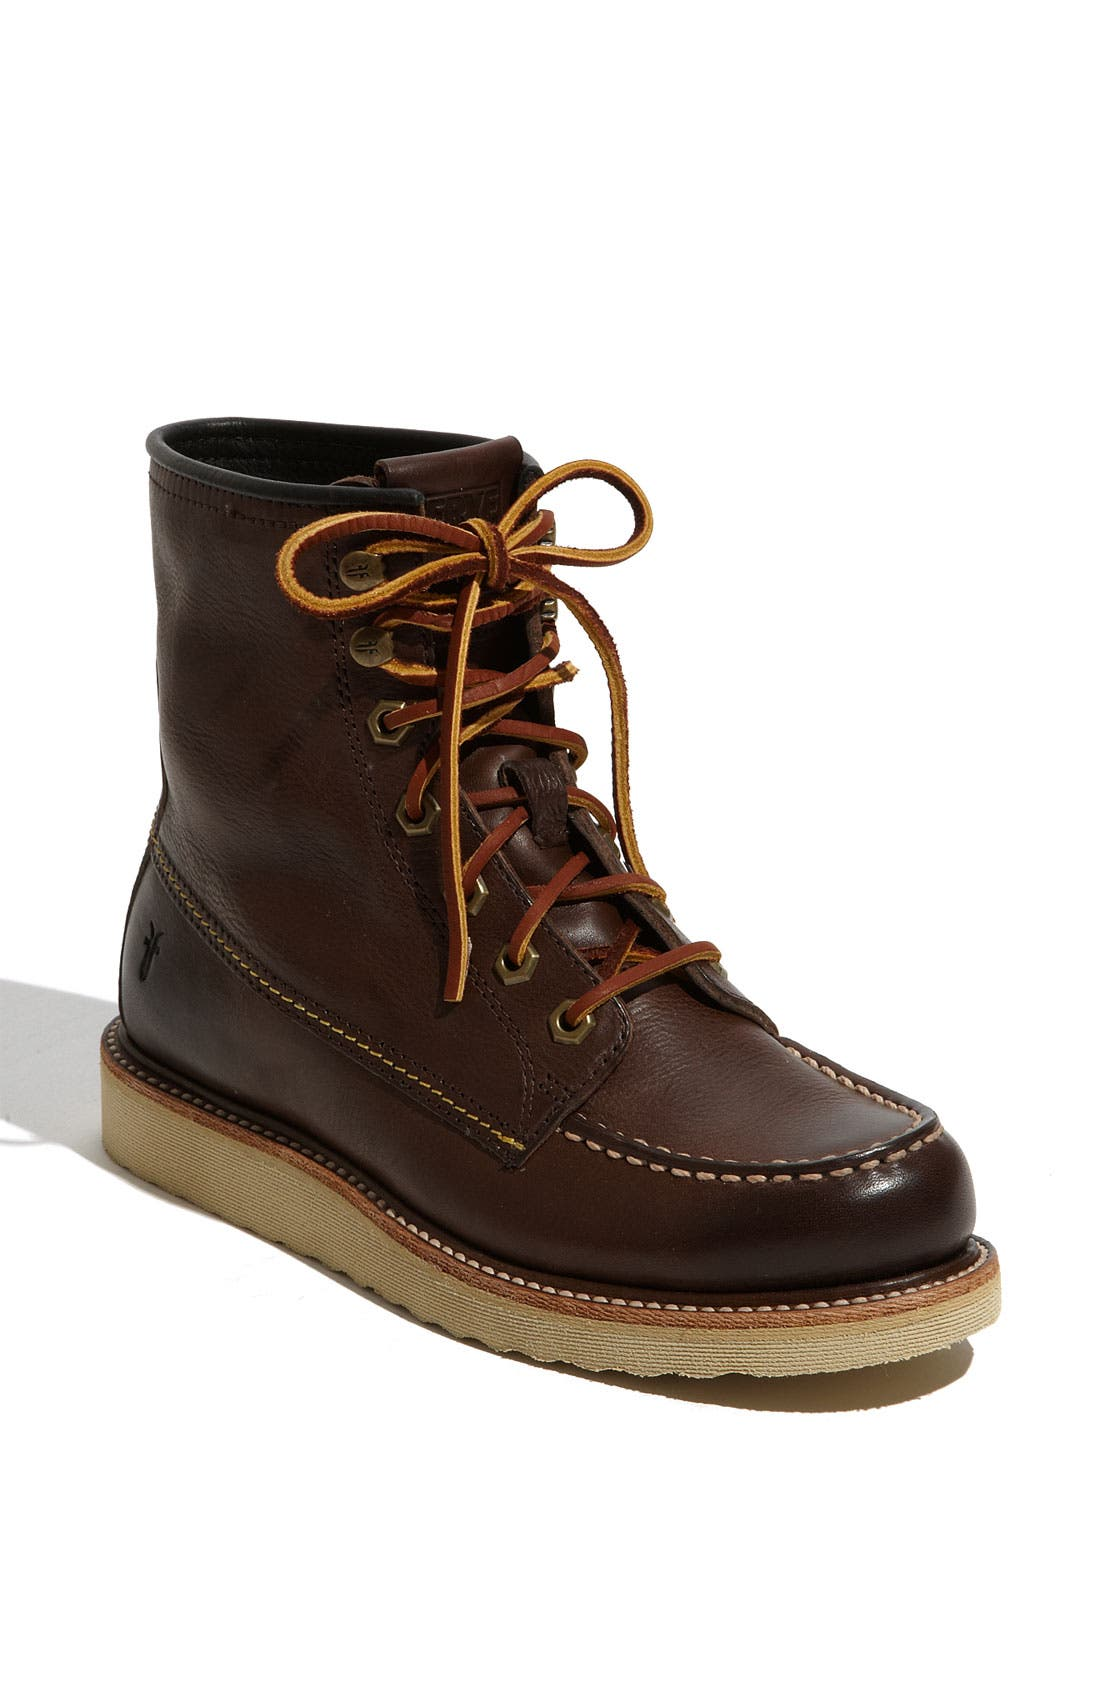 Main Image - Frye 'Dakota' Wedge Boot